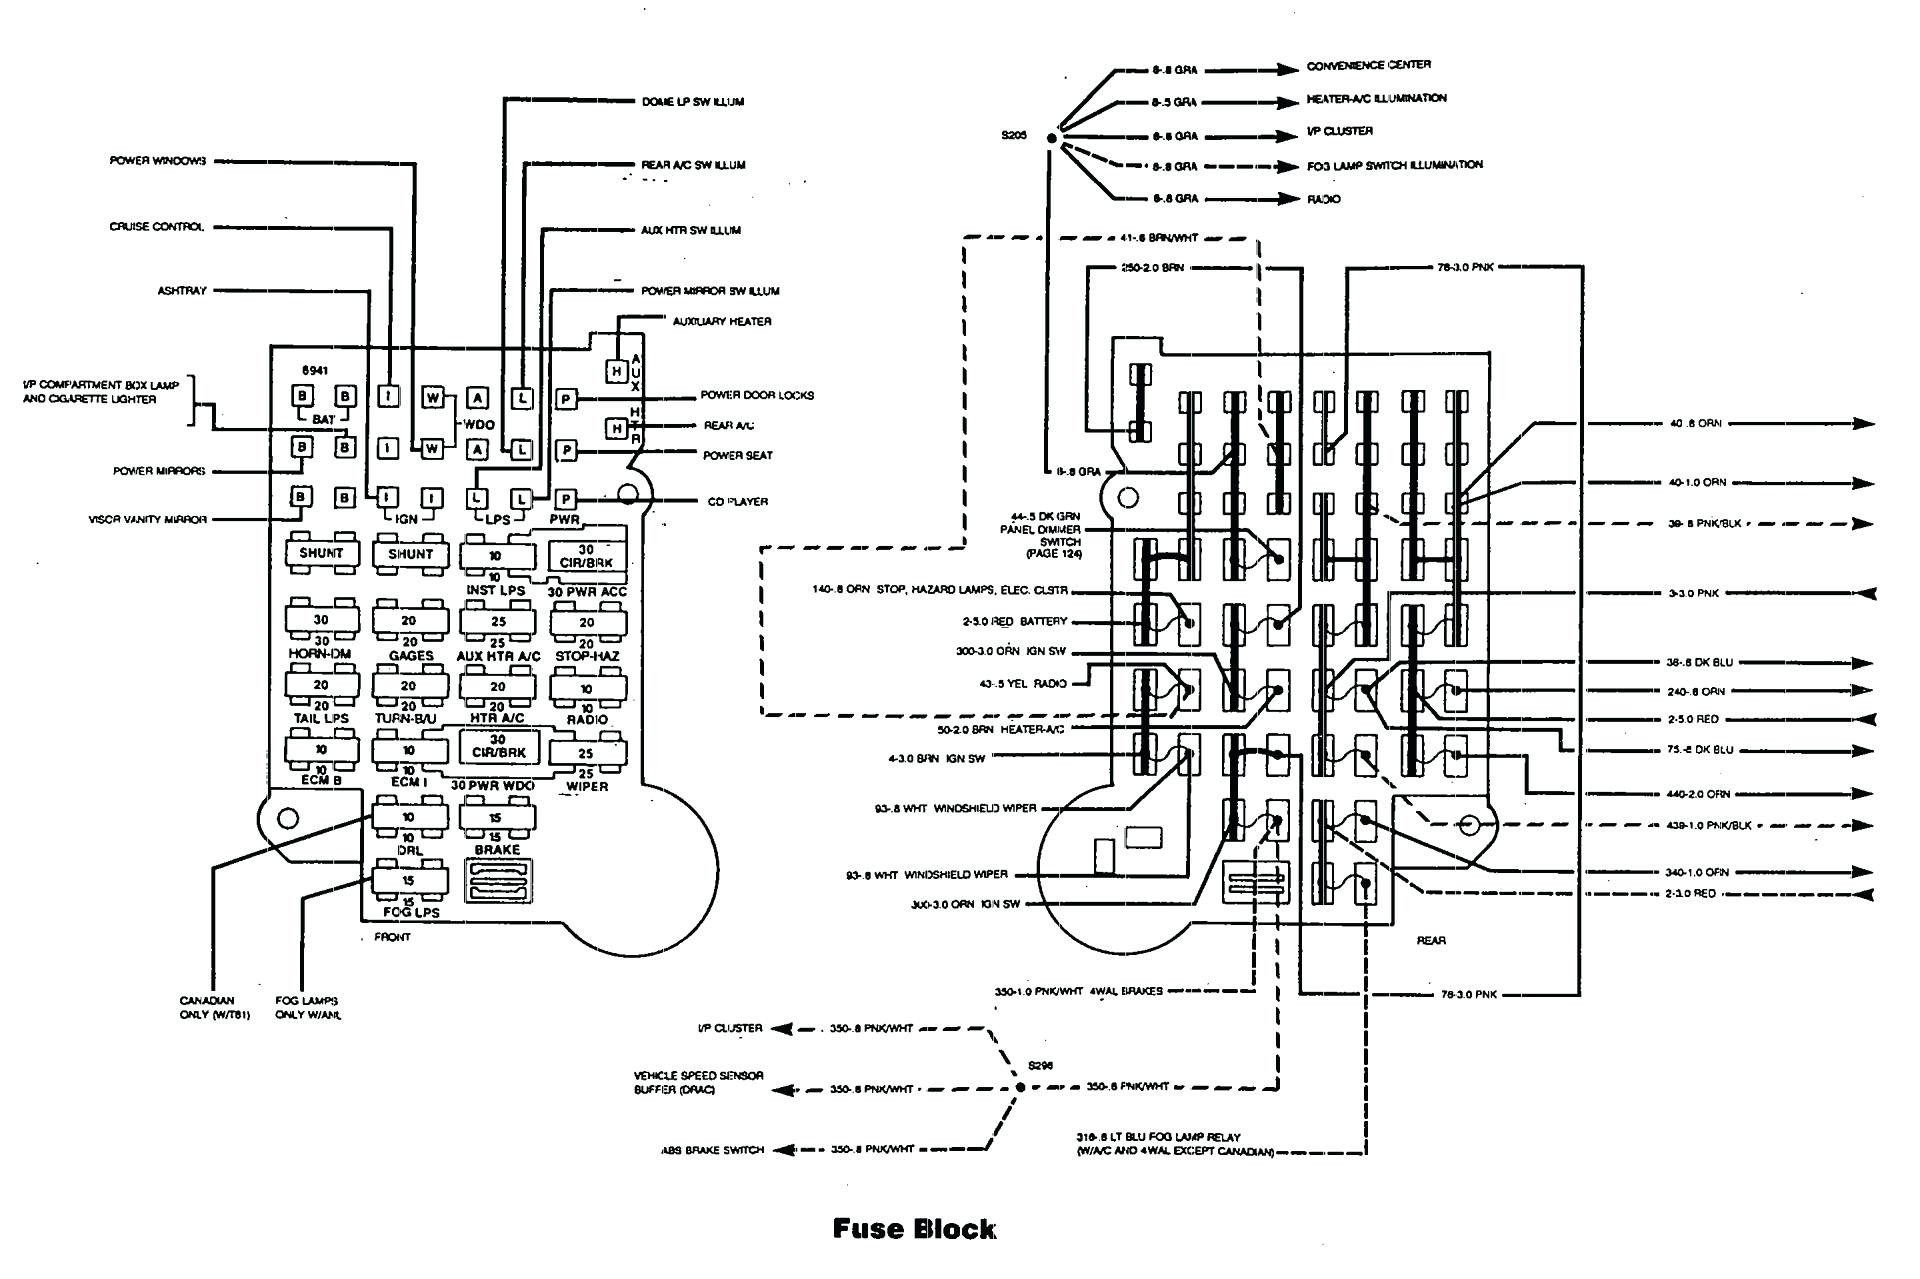 Wiring Diagram For 2003 Chrysler Voyager Get Free Image About Wiring